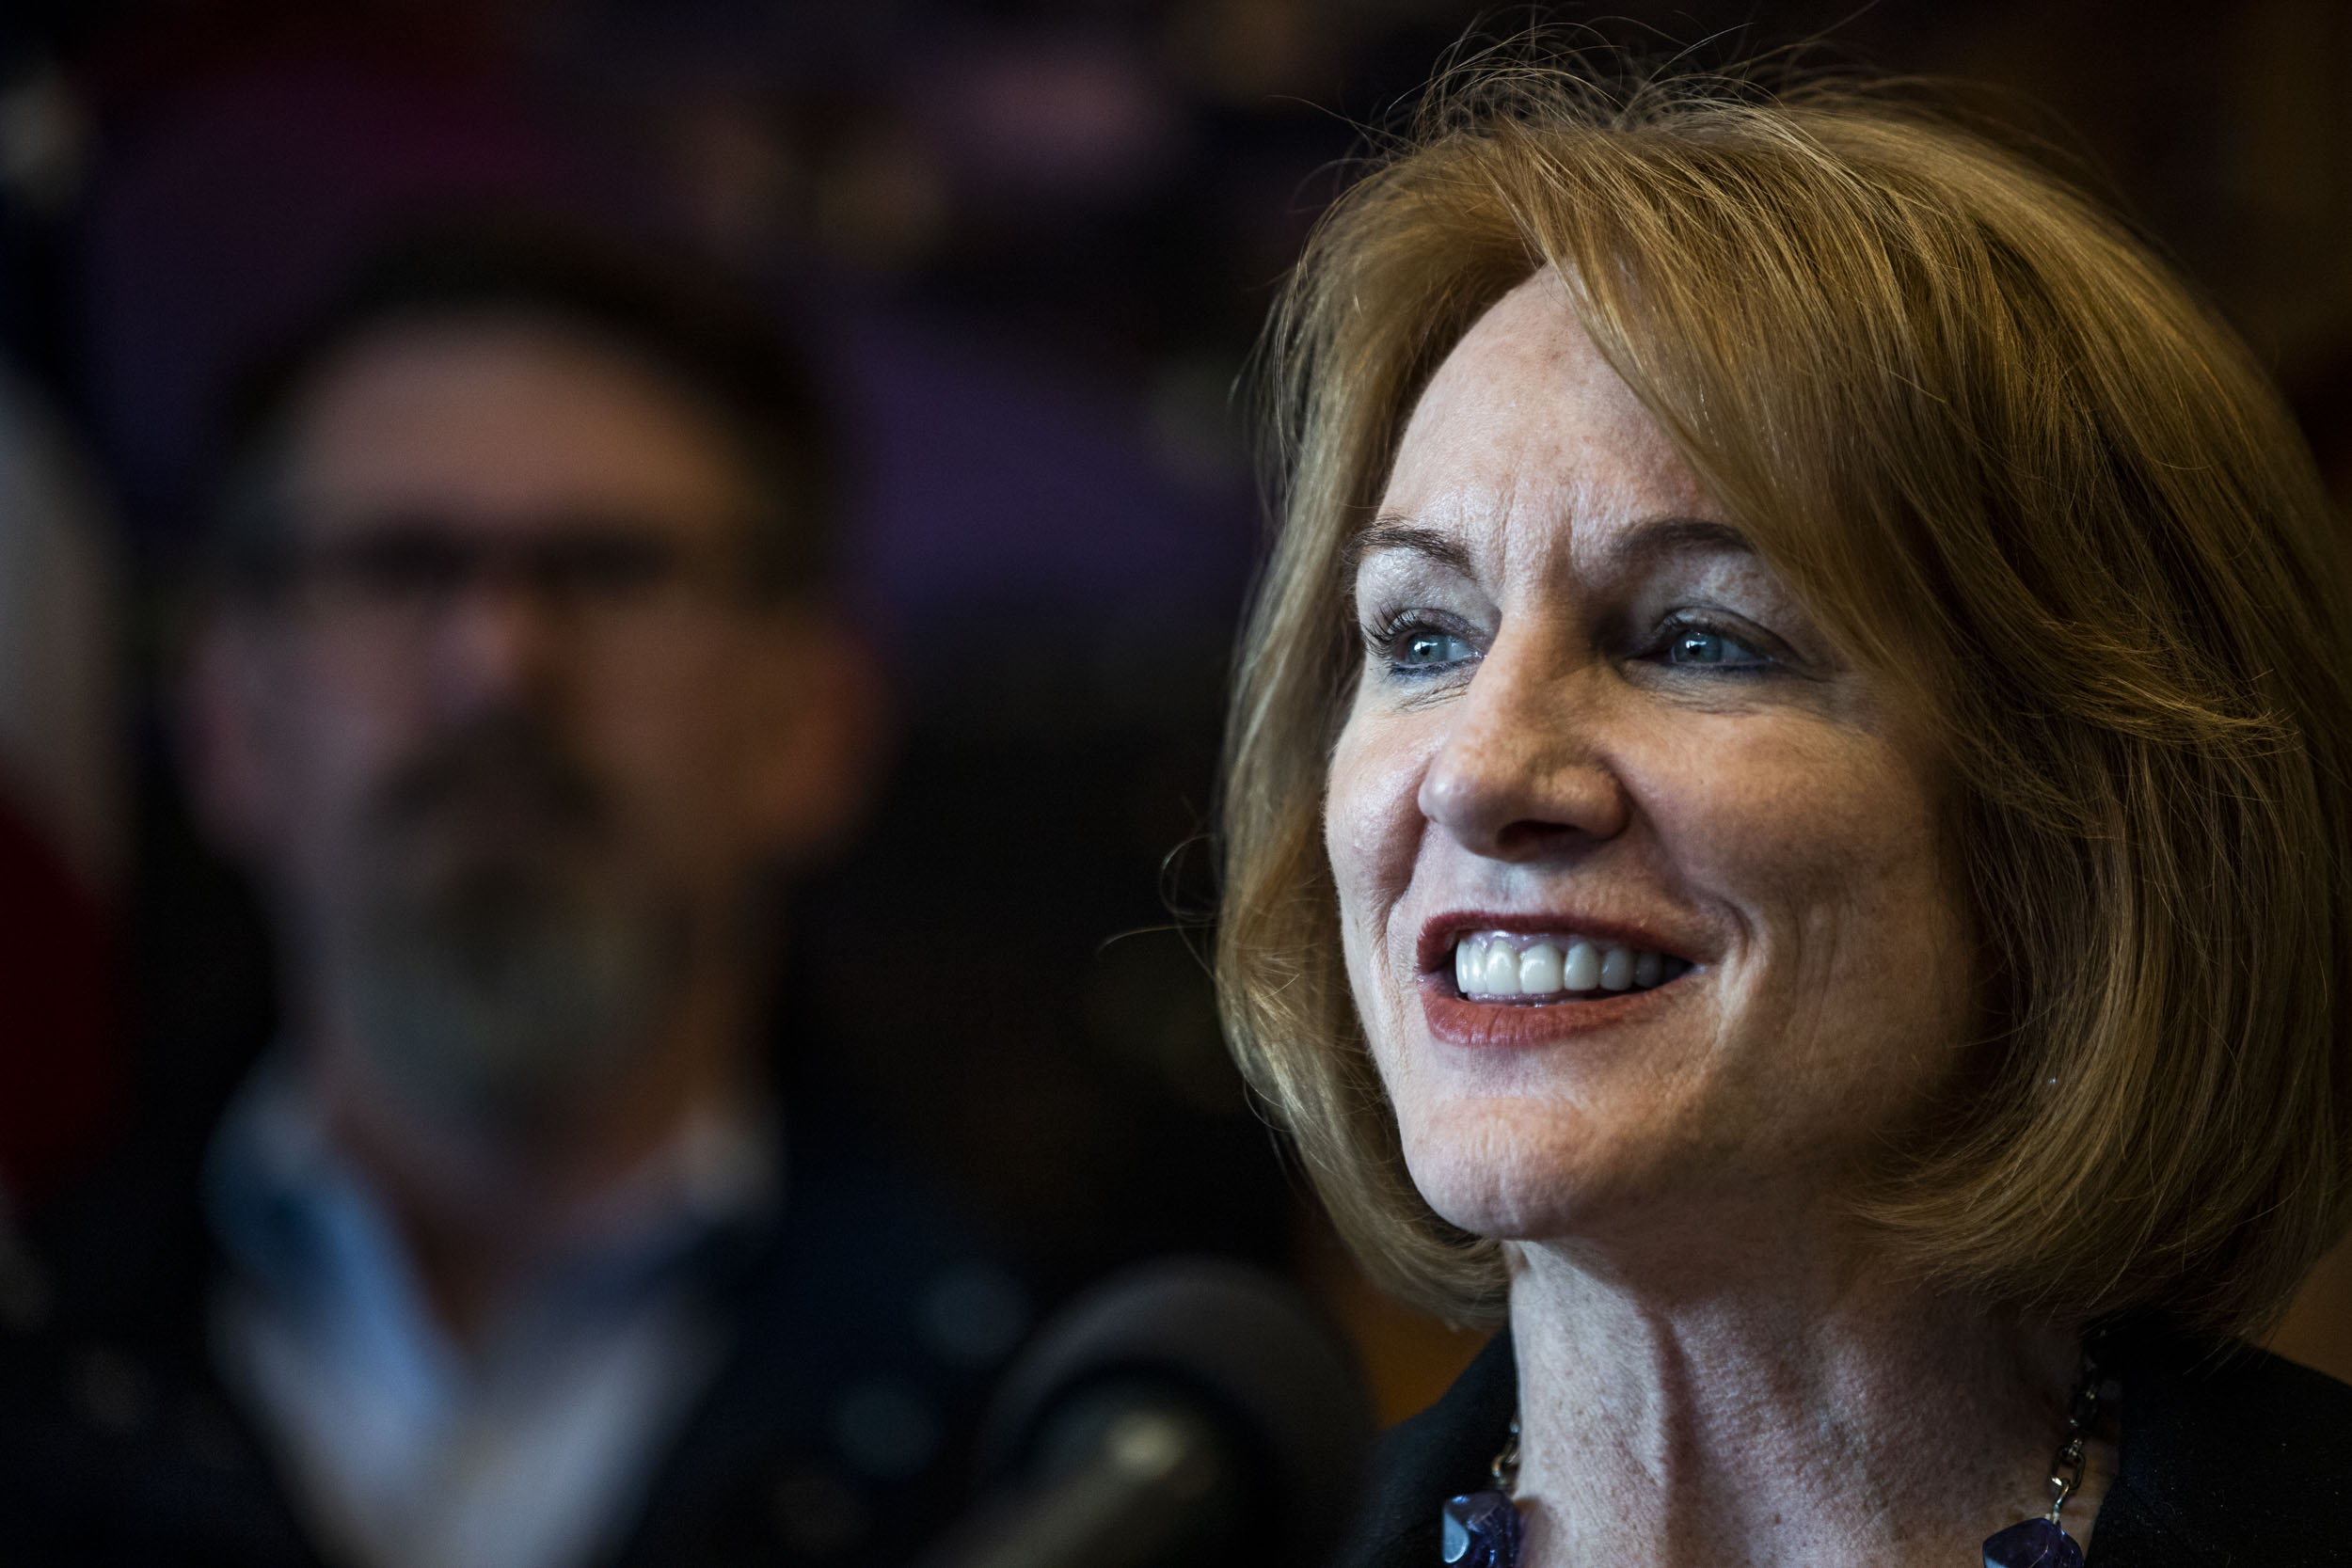 Durkan can't make Seattle a climate leader without fixing our commute